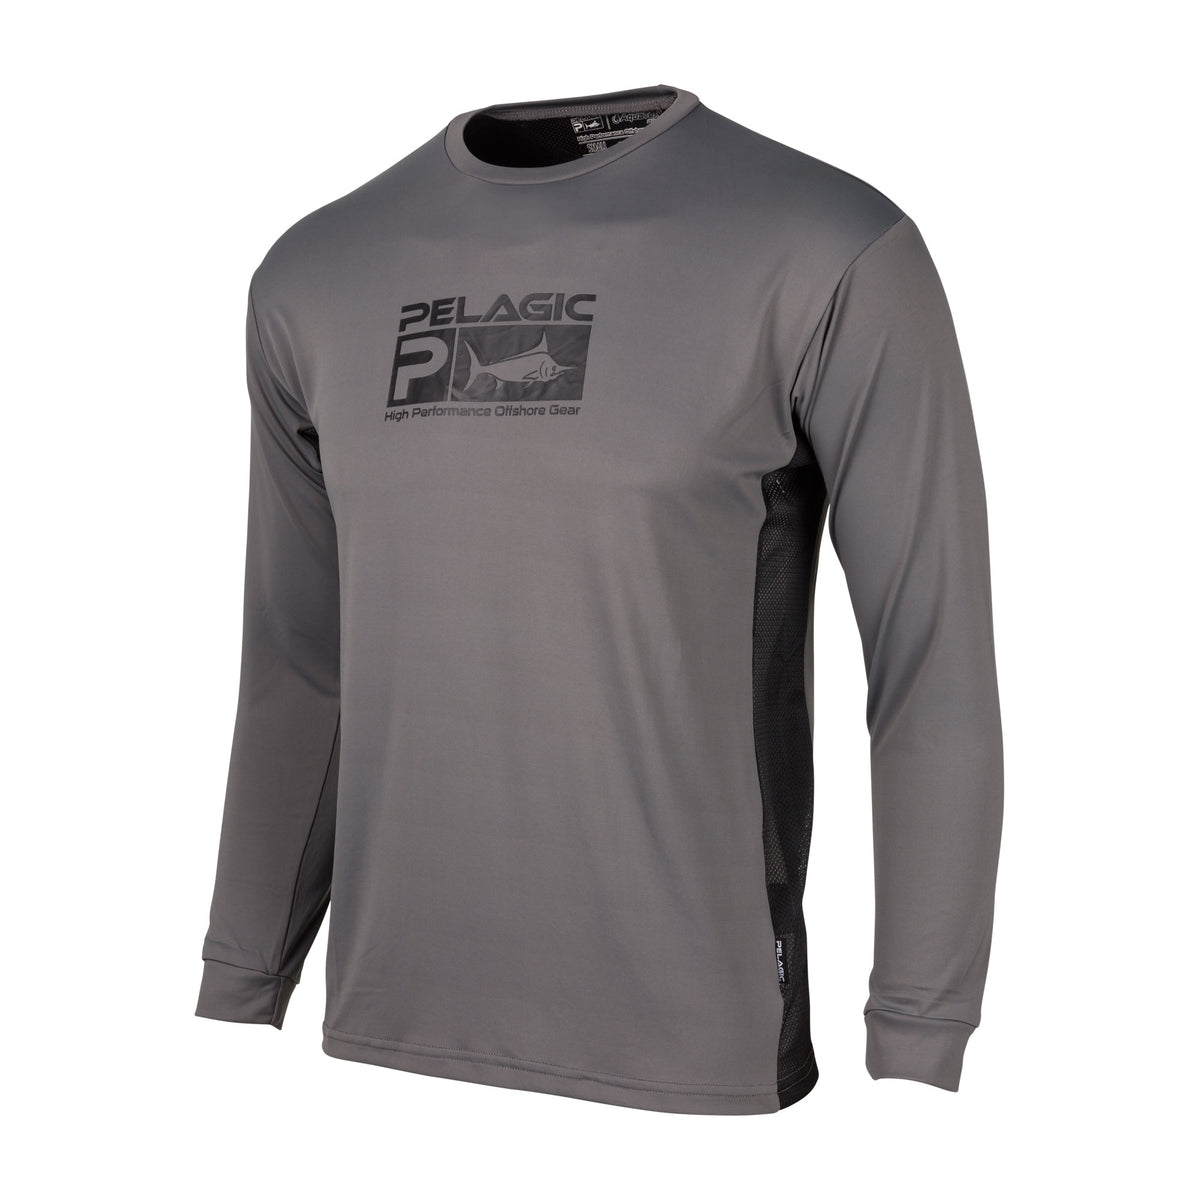 Aquatek Pro Performance Shirt Big Image - 1